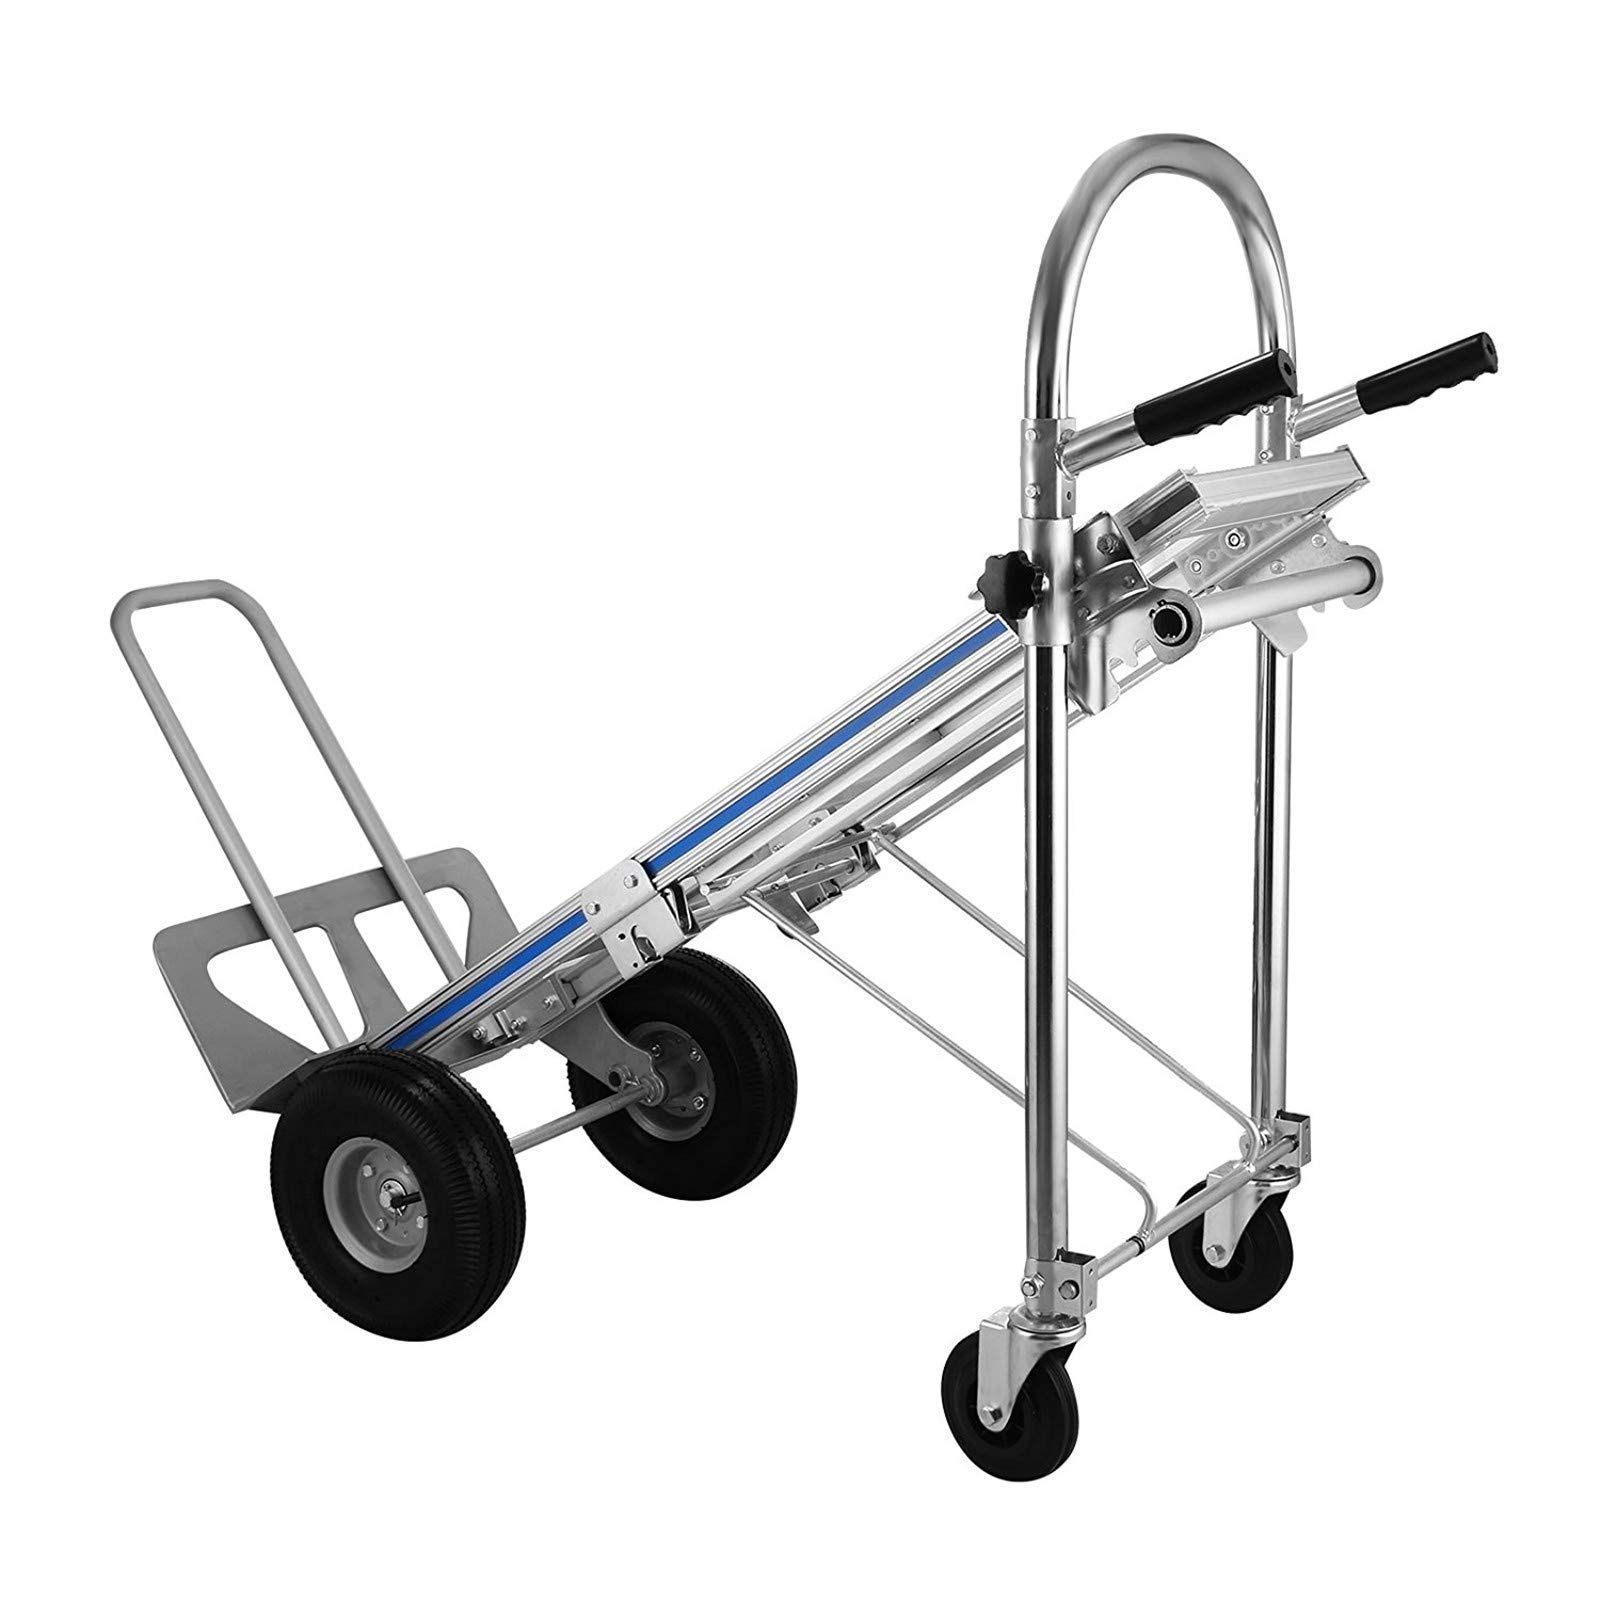 SHZOND Hand Truck 3 in 1 Convertible Hand Truck 770LBS Capacity Hand Truck Dolly 2 Wheel Dolly and 4 Wheel Cart with 10'' Pneumatic Wheels by SHZOND